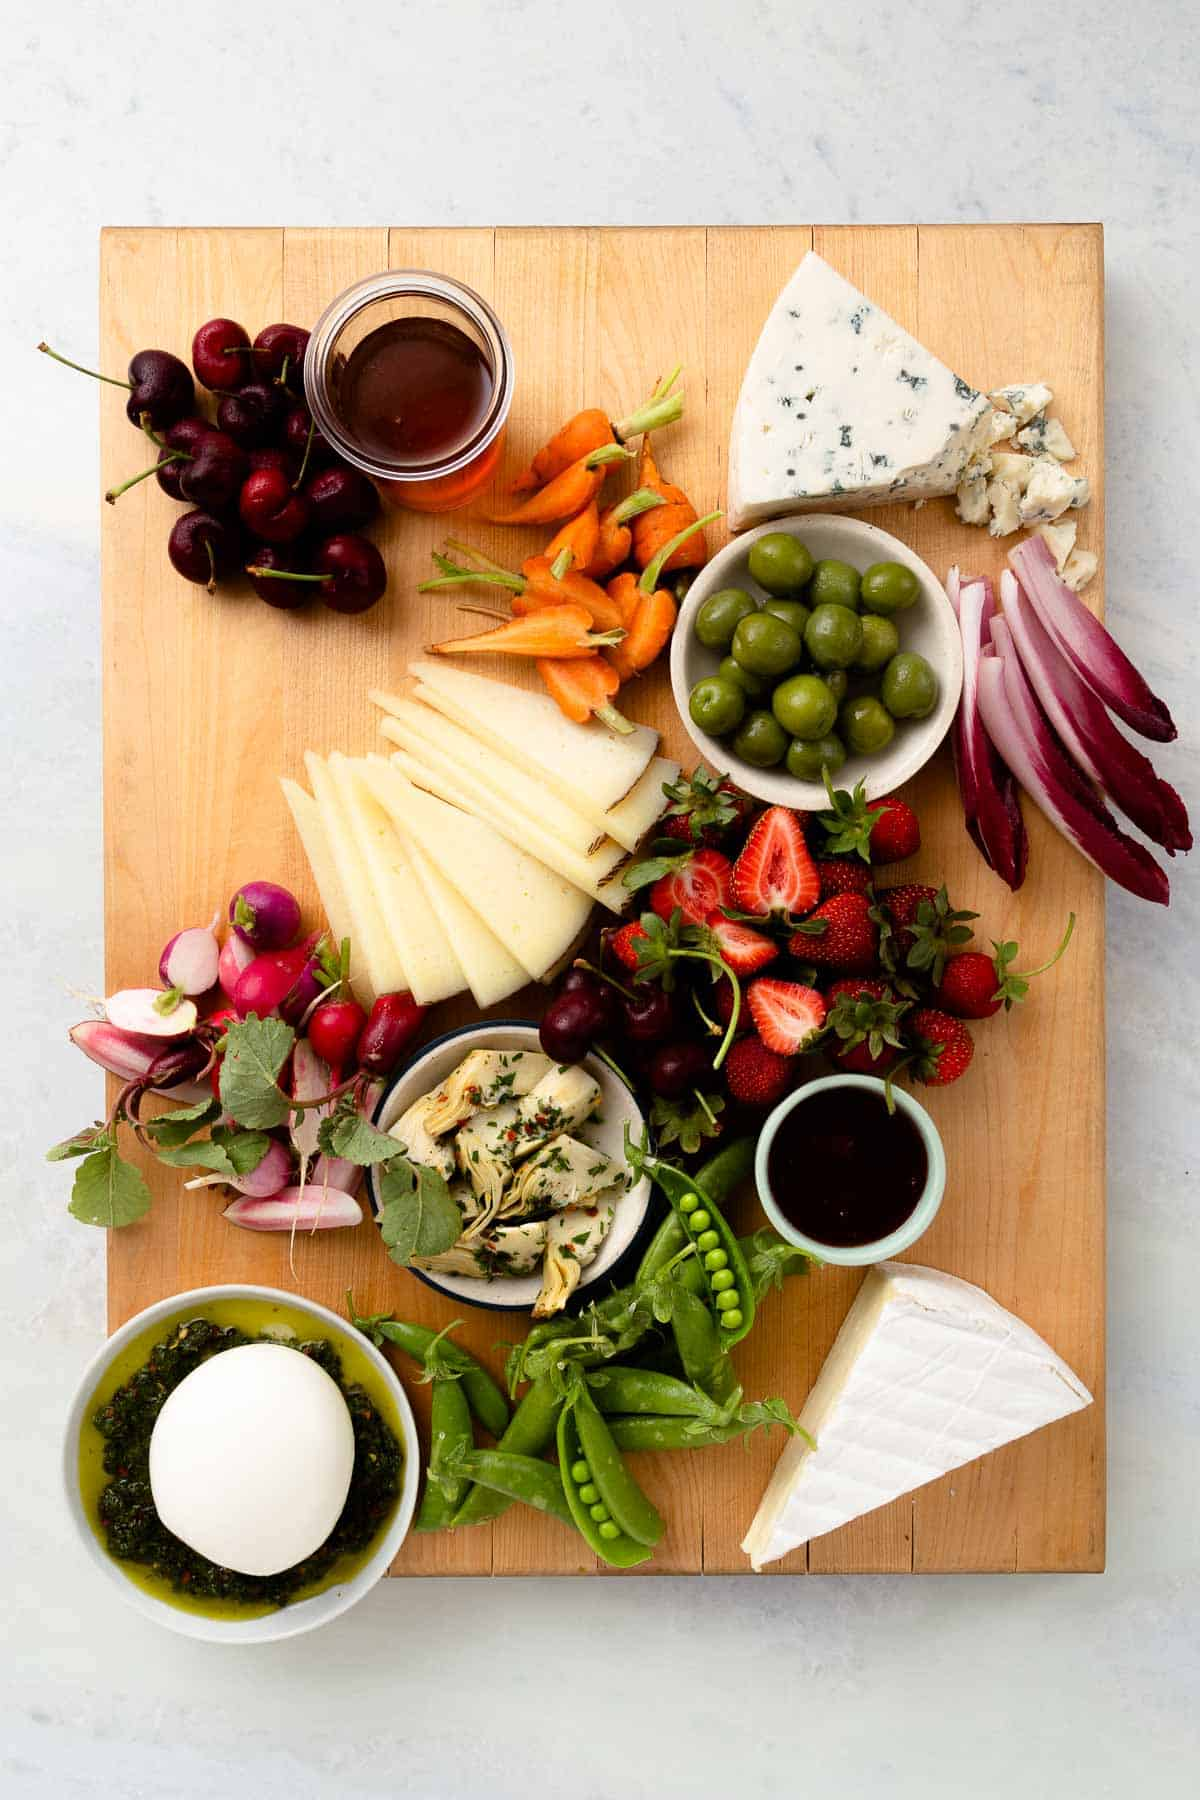 filling a large wood board with vegetables, green olives, jam, and white cheeses